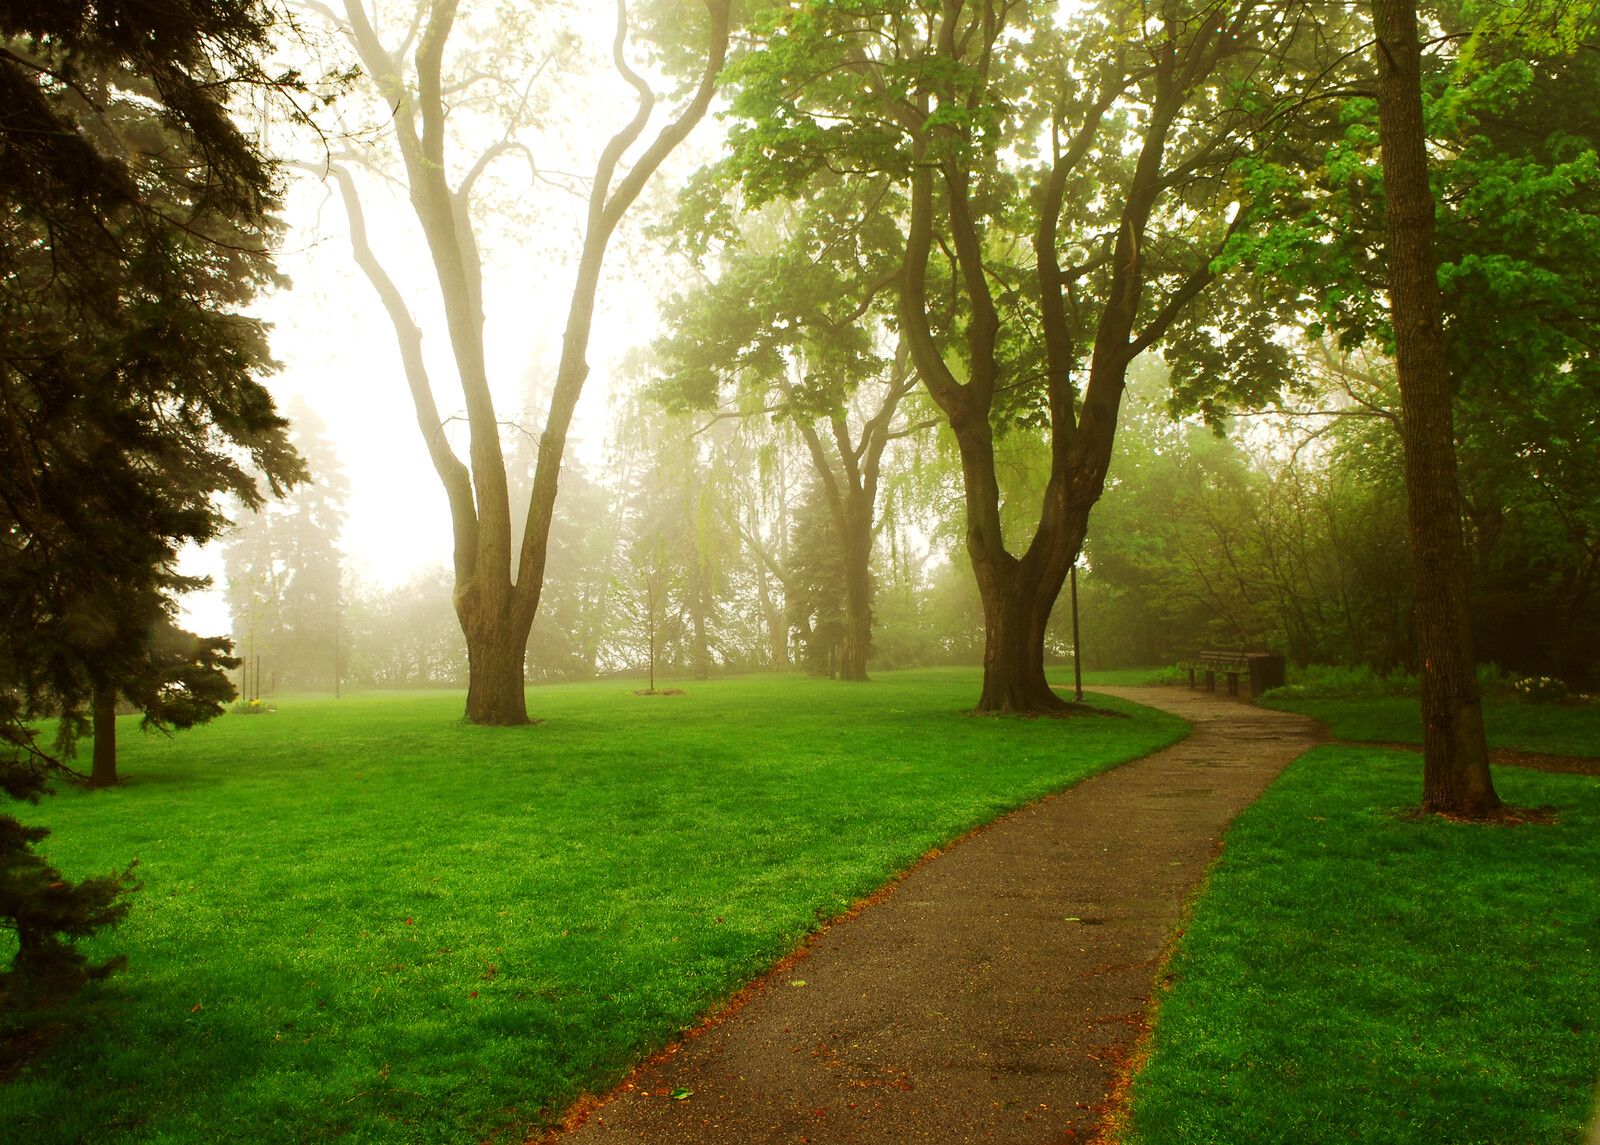 Foggy morning in a park with mature trees and green grass